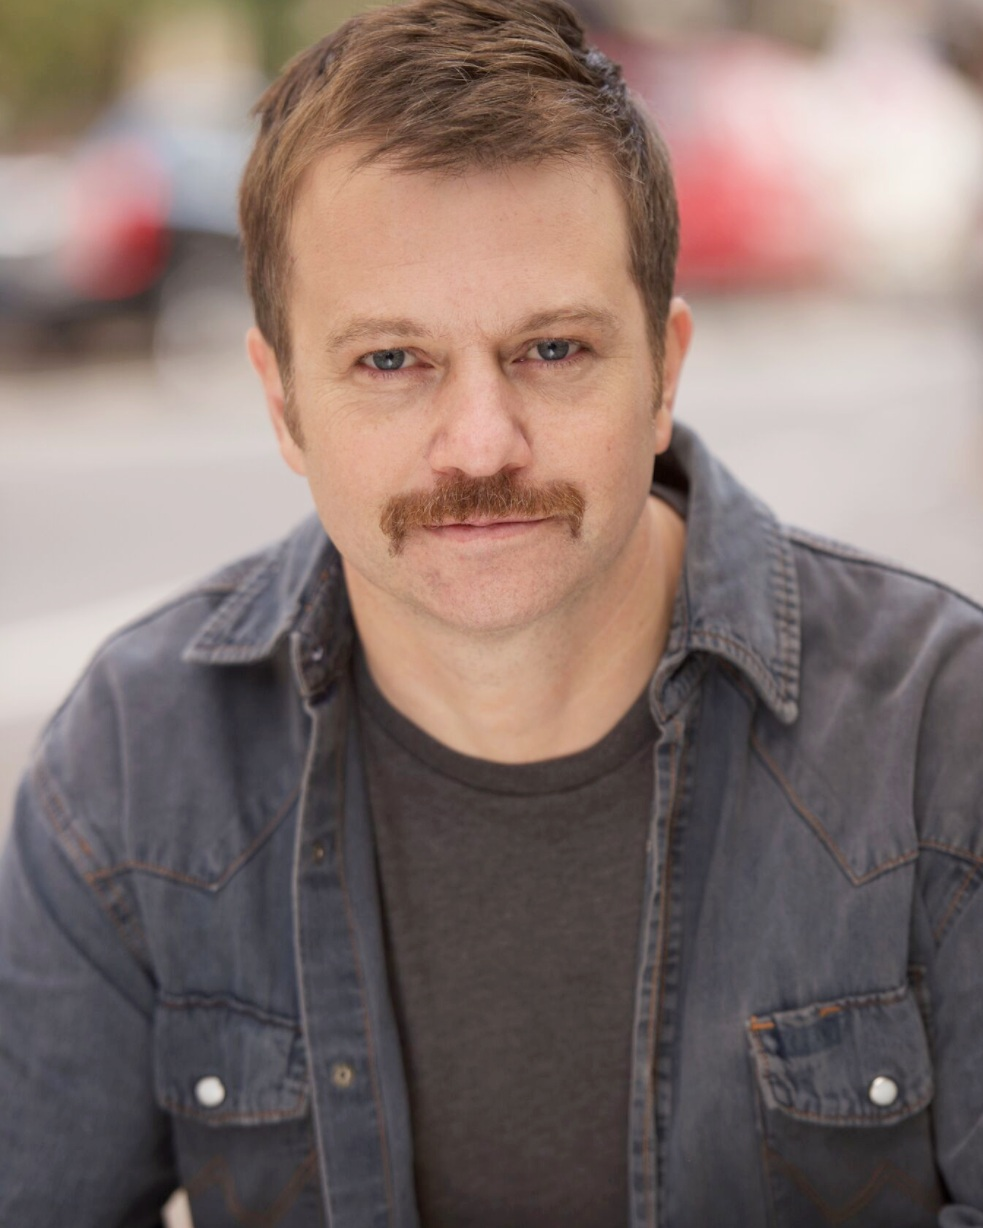 LARS ENGSTROM - Talk about an exciting week ahead…So stoked for client Lars Engstrom who will be filming his role of '[sic]' on Netflix's new 1/2 hour series [SIC] and then flying to Toronto to shoot a network national commercial for Snickers!